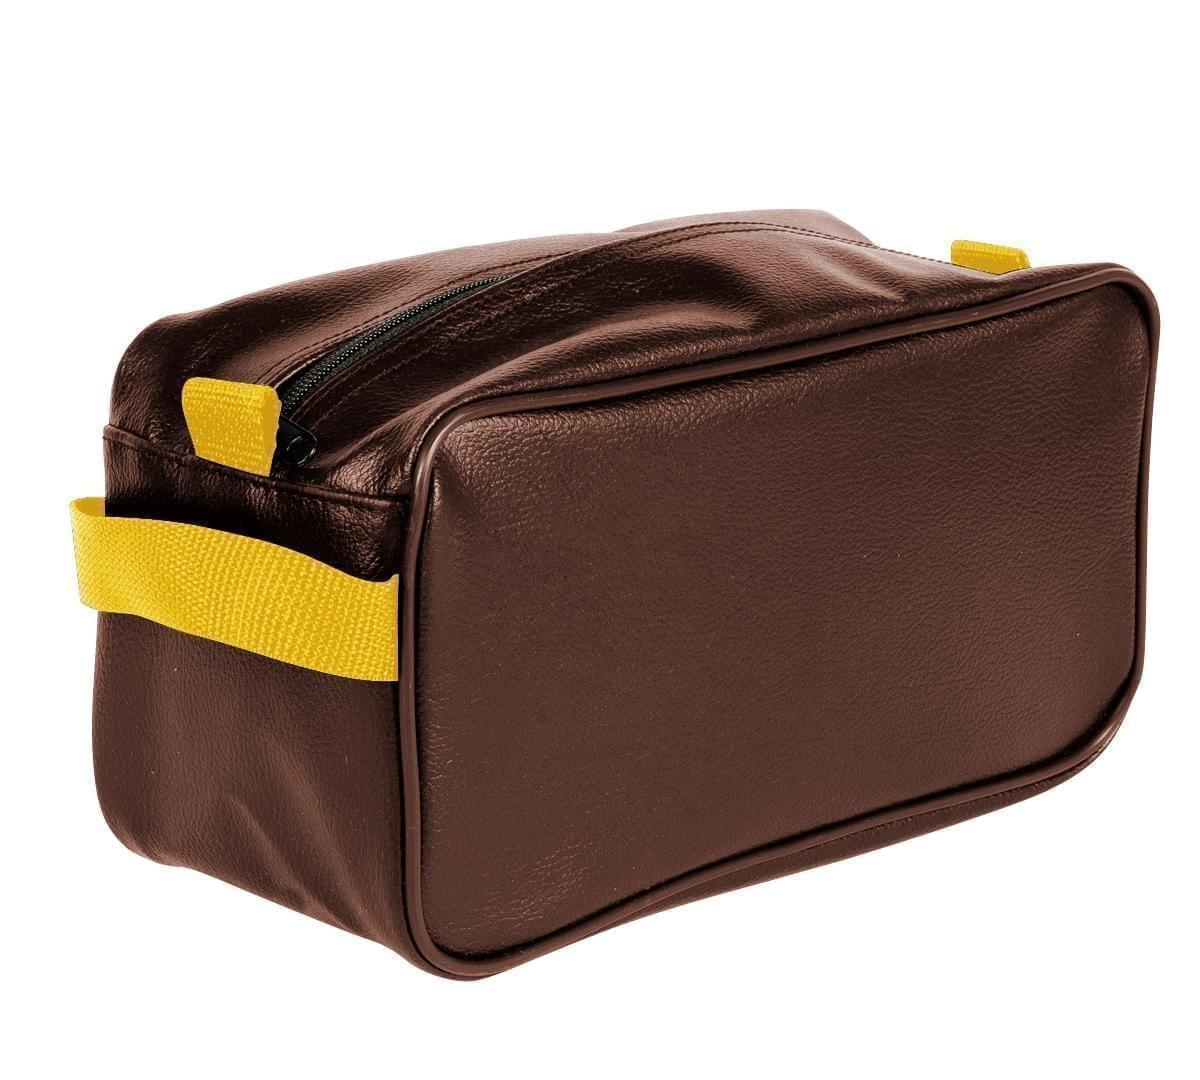 USA Made Cosmetic & Toiletry Cases, Brown-Gold, 3000996-AP5